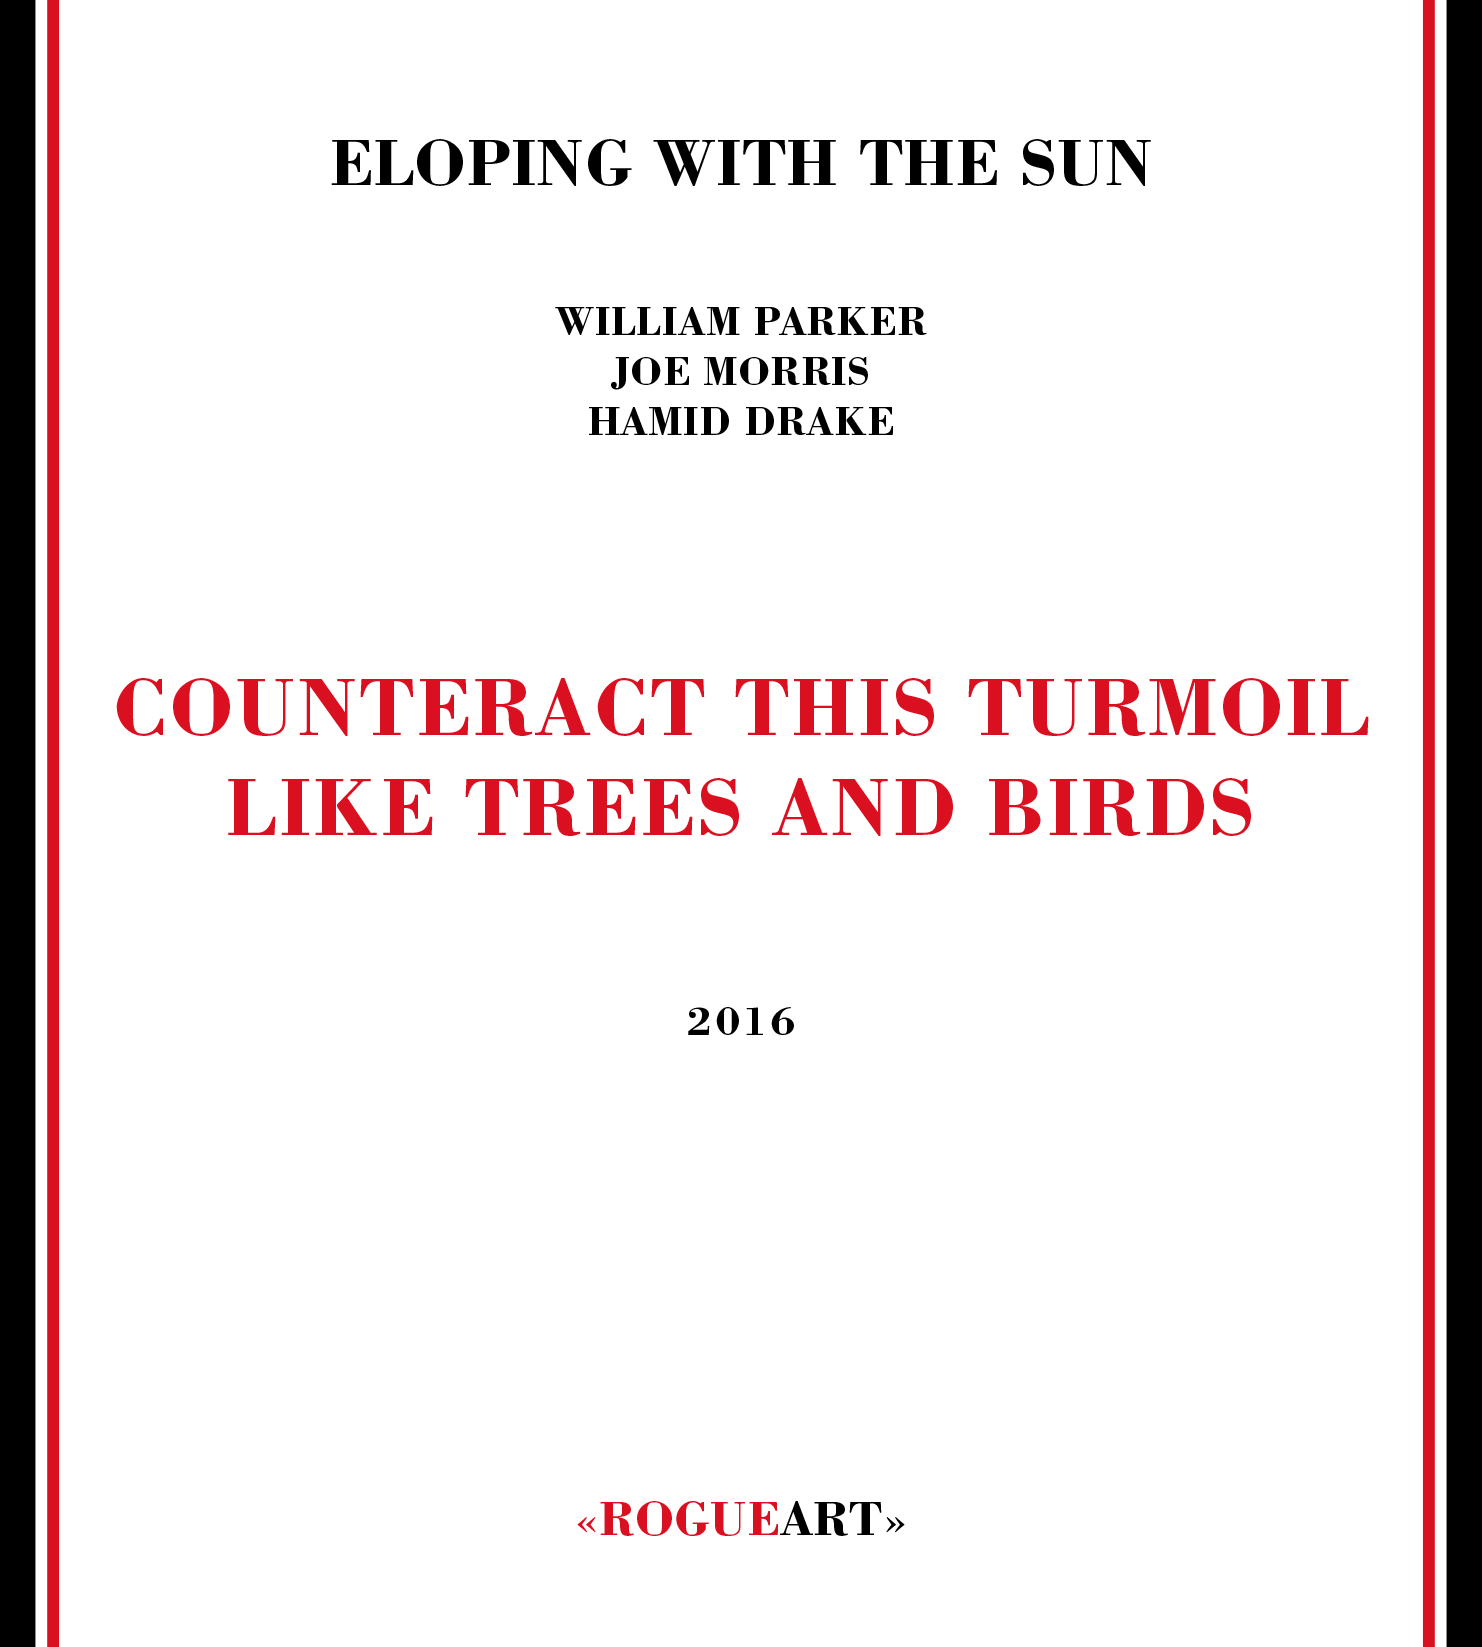 Front cover of the album COUNTERACT THIS TURMOIL LIKE TREES AND BIRDS